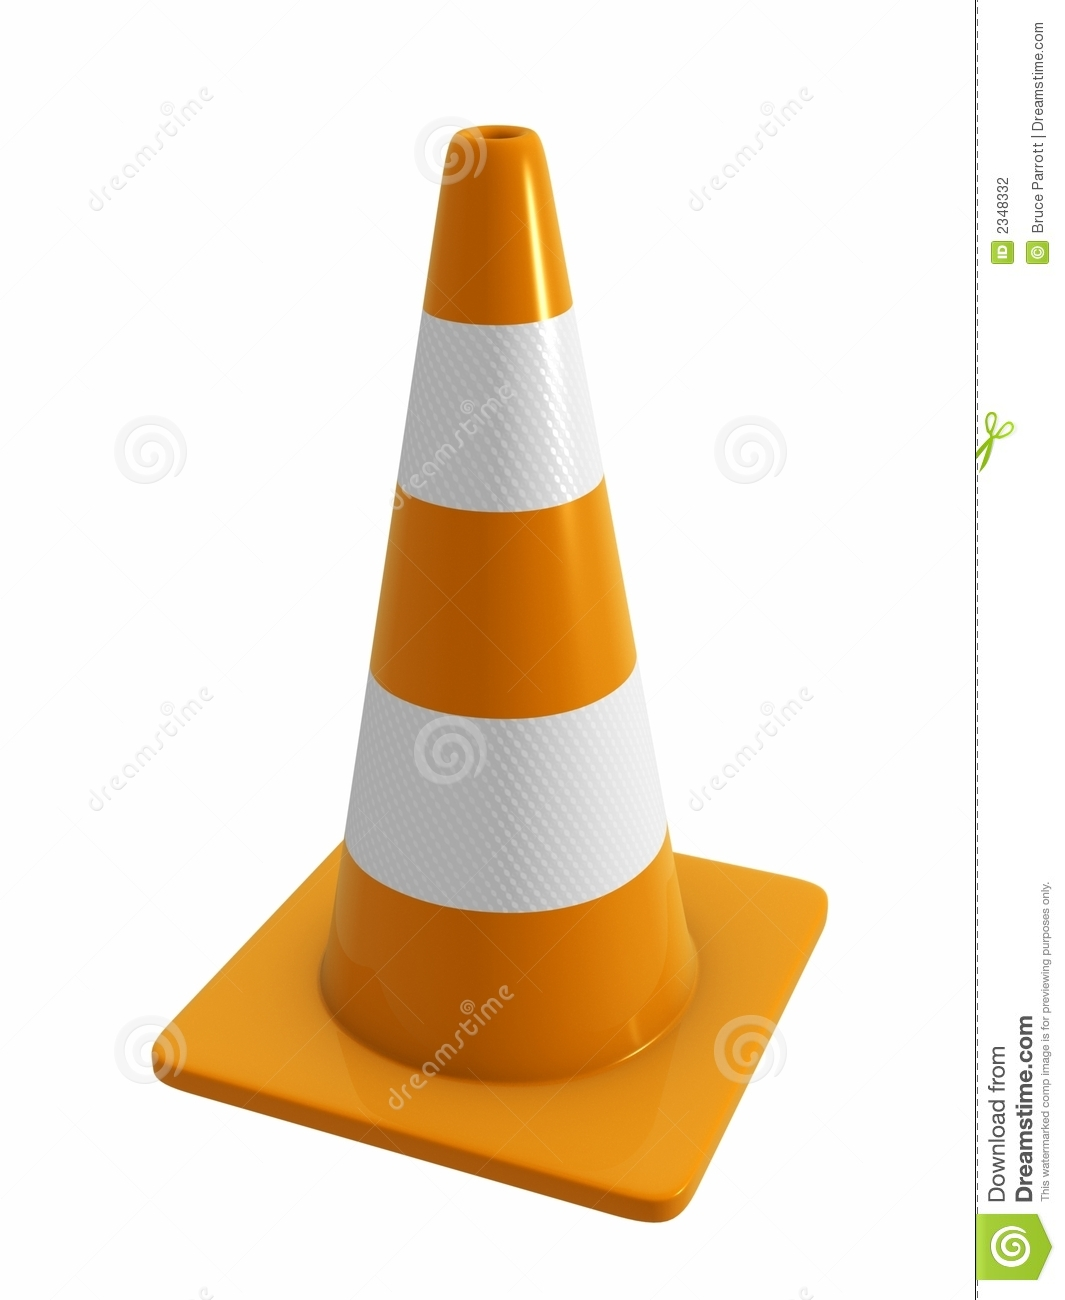 Road Cone with reflective band